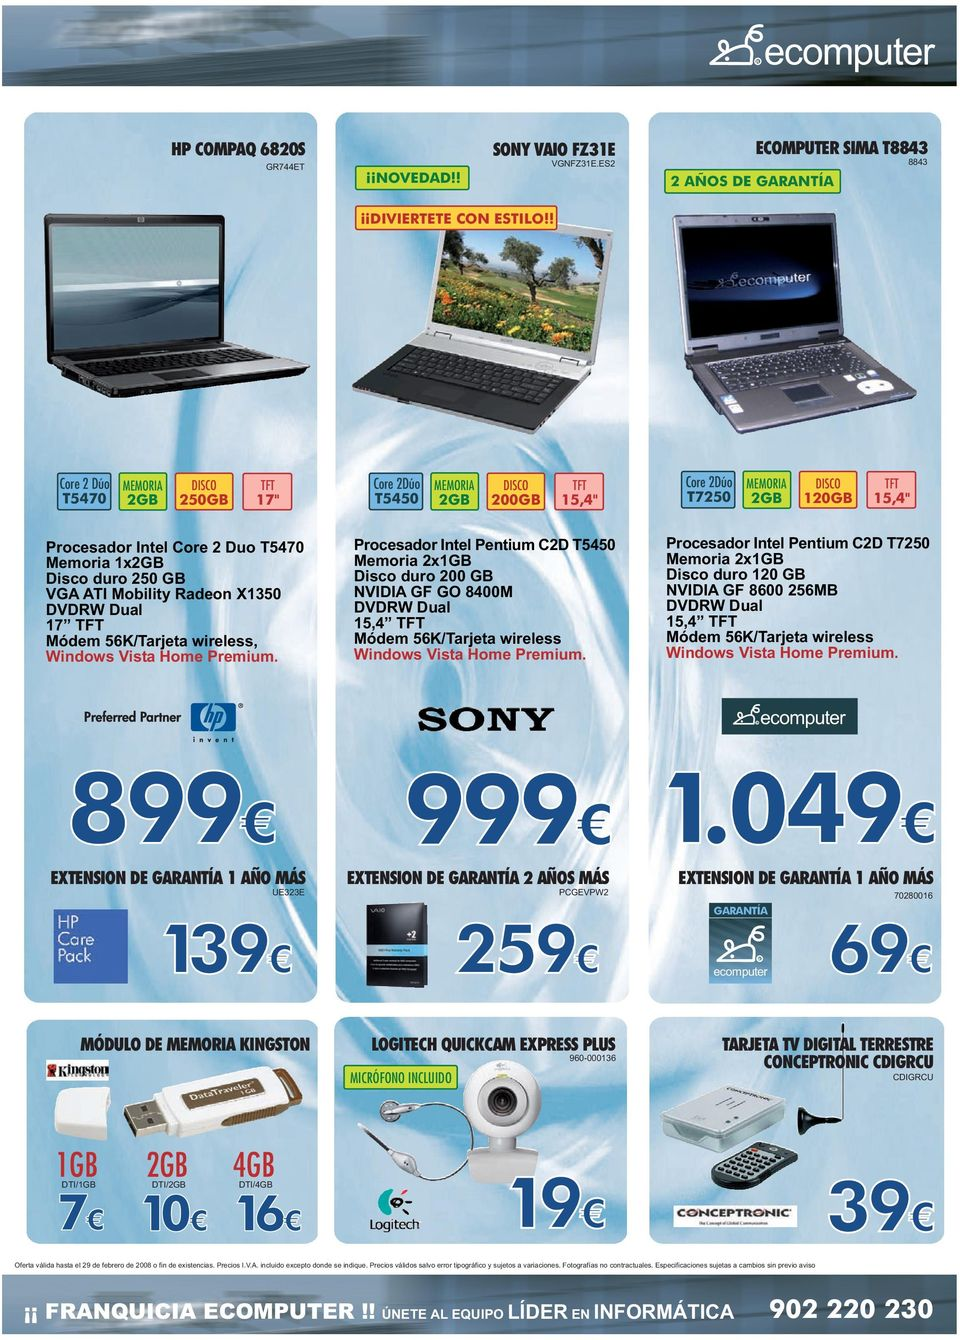 ATI Mobility adeon X1350 DVDW Dual 17 TFT Módem 56K/Tarjeta wireless, Windows Vista Home Premium.